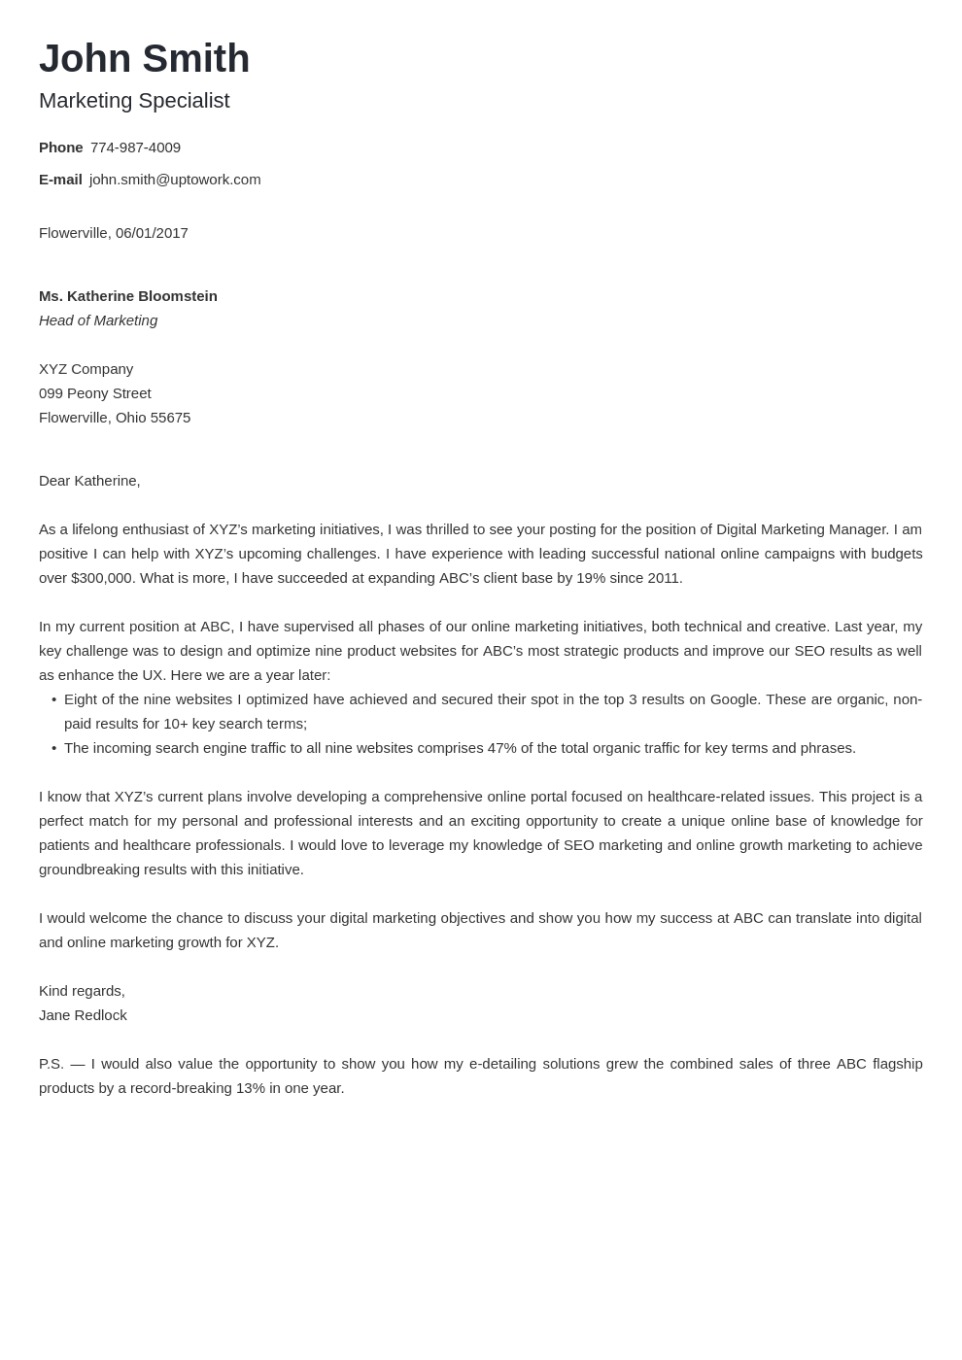 Professional cover letter Template Minimo